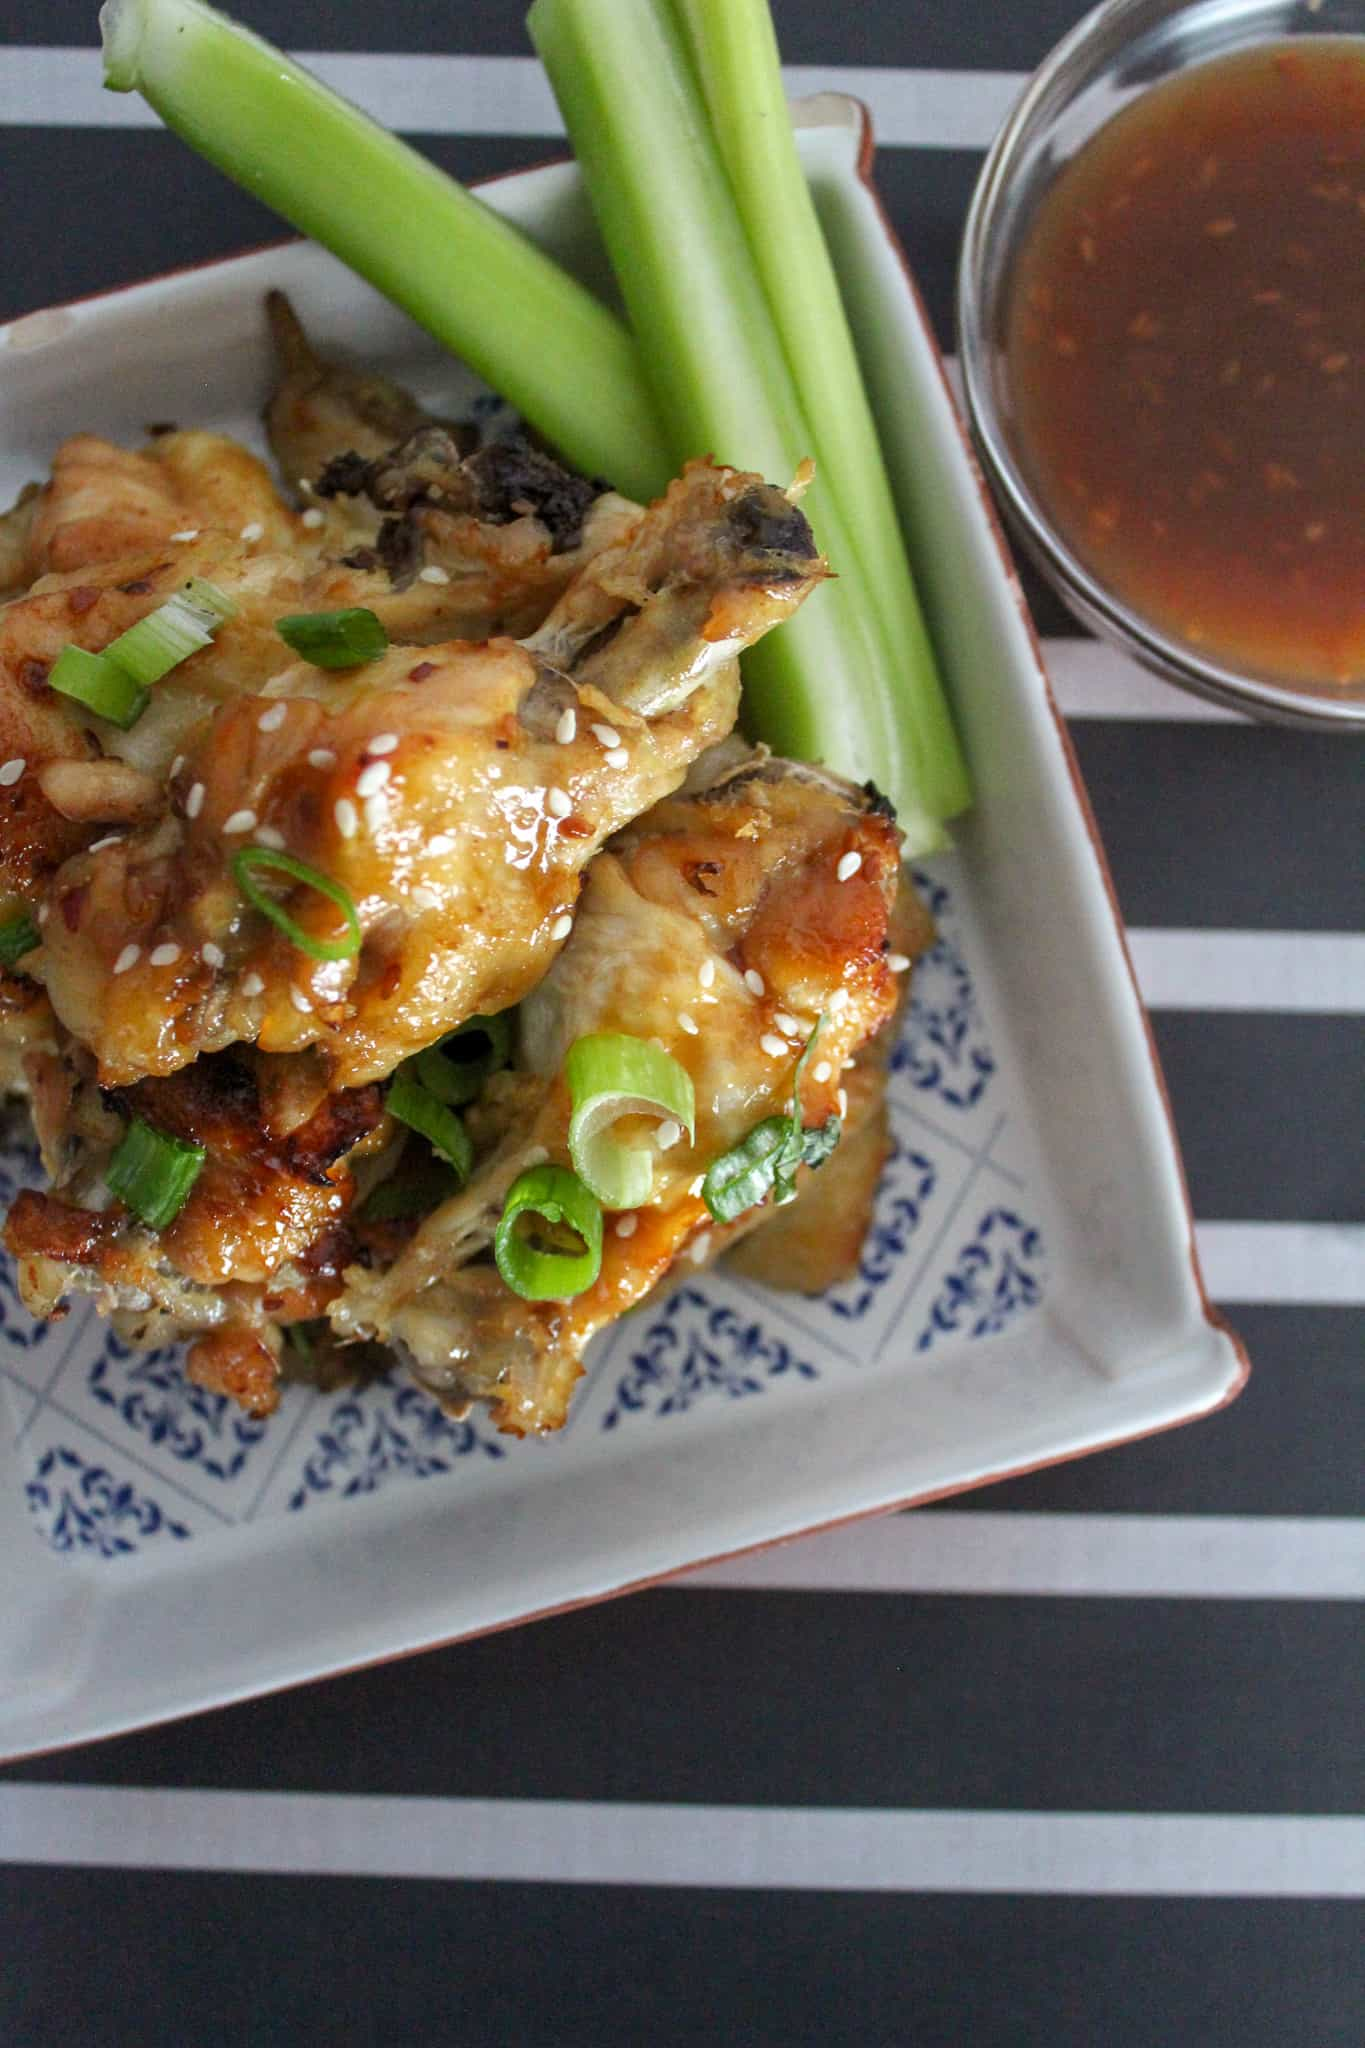 Instant Pot Sesame Chicken Wings Recipes | Easy and Quick Asian Chicken Wings That Are Sticky #sweet #sticky #AsianWings #Easy #Dinner #footballfood #appetizer #footballgrub